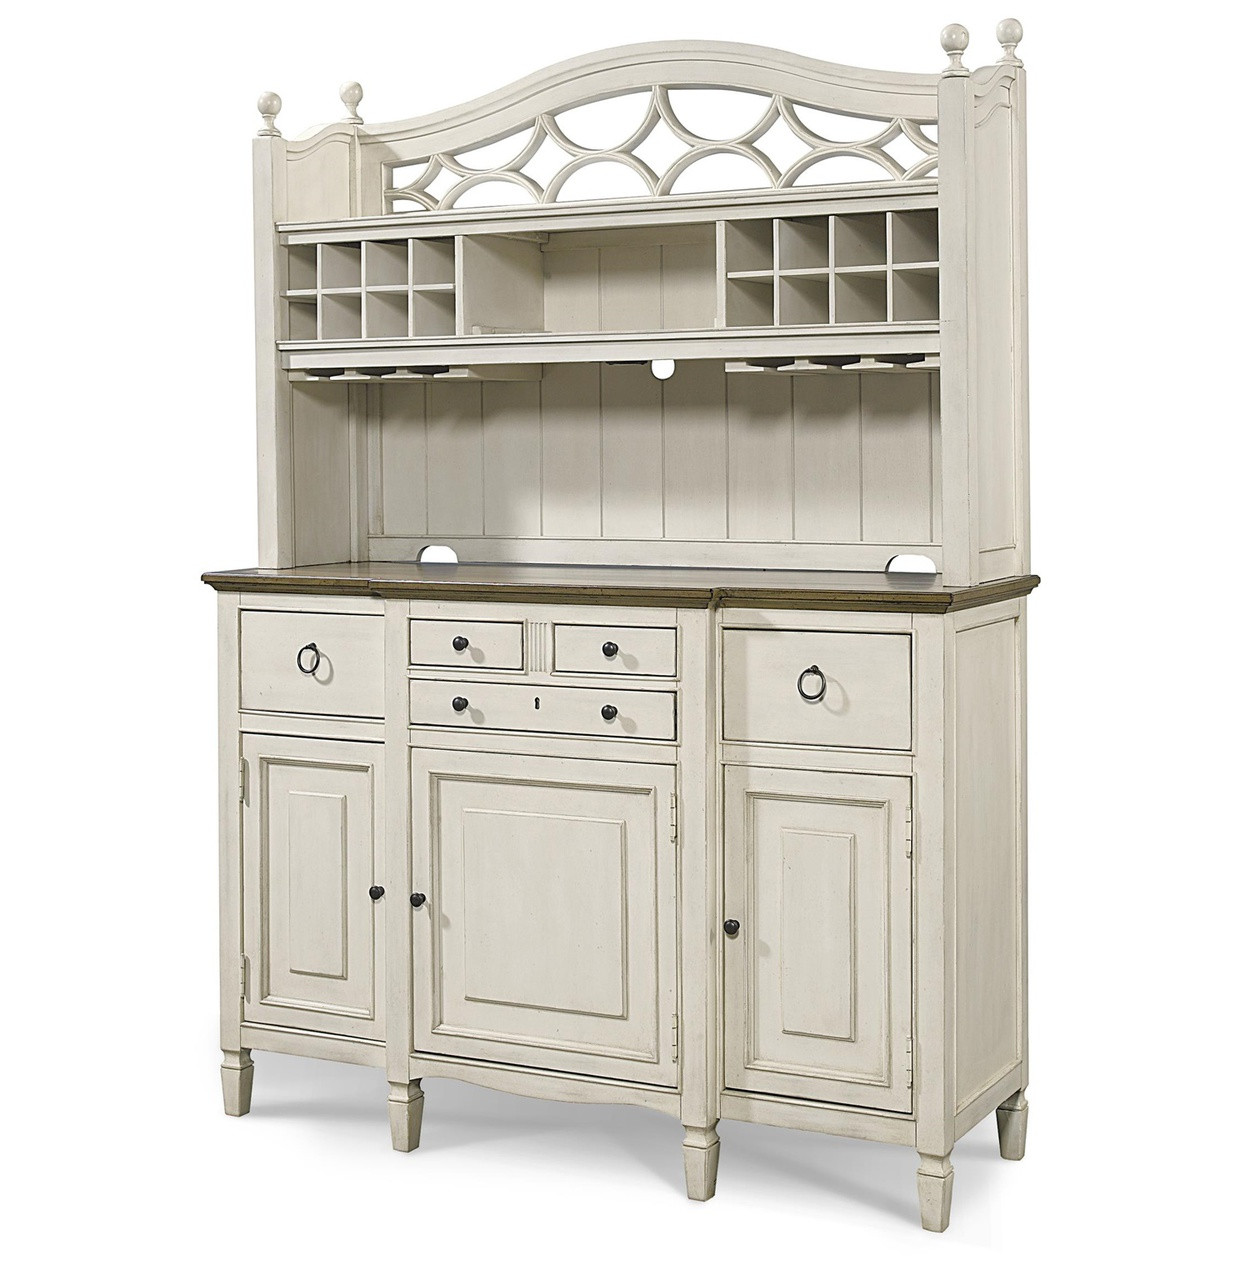 Wood Hutches Sideboards And Buffets ~ Country chic maple wood white kitchen buffet with bar